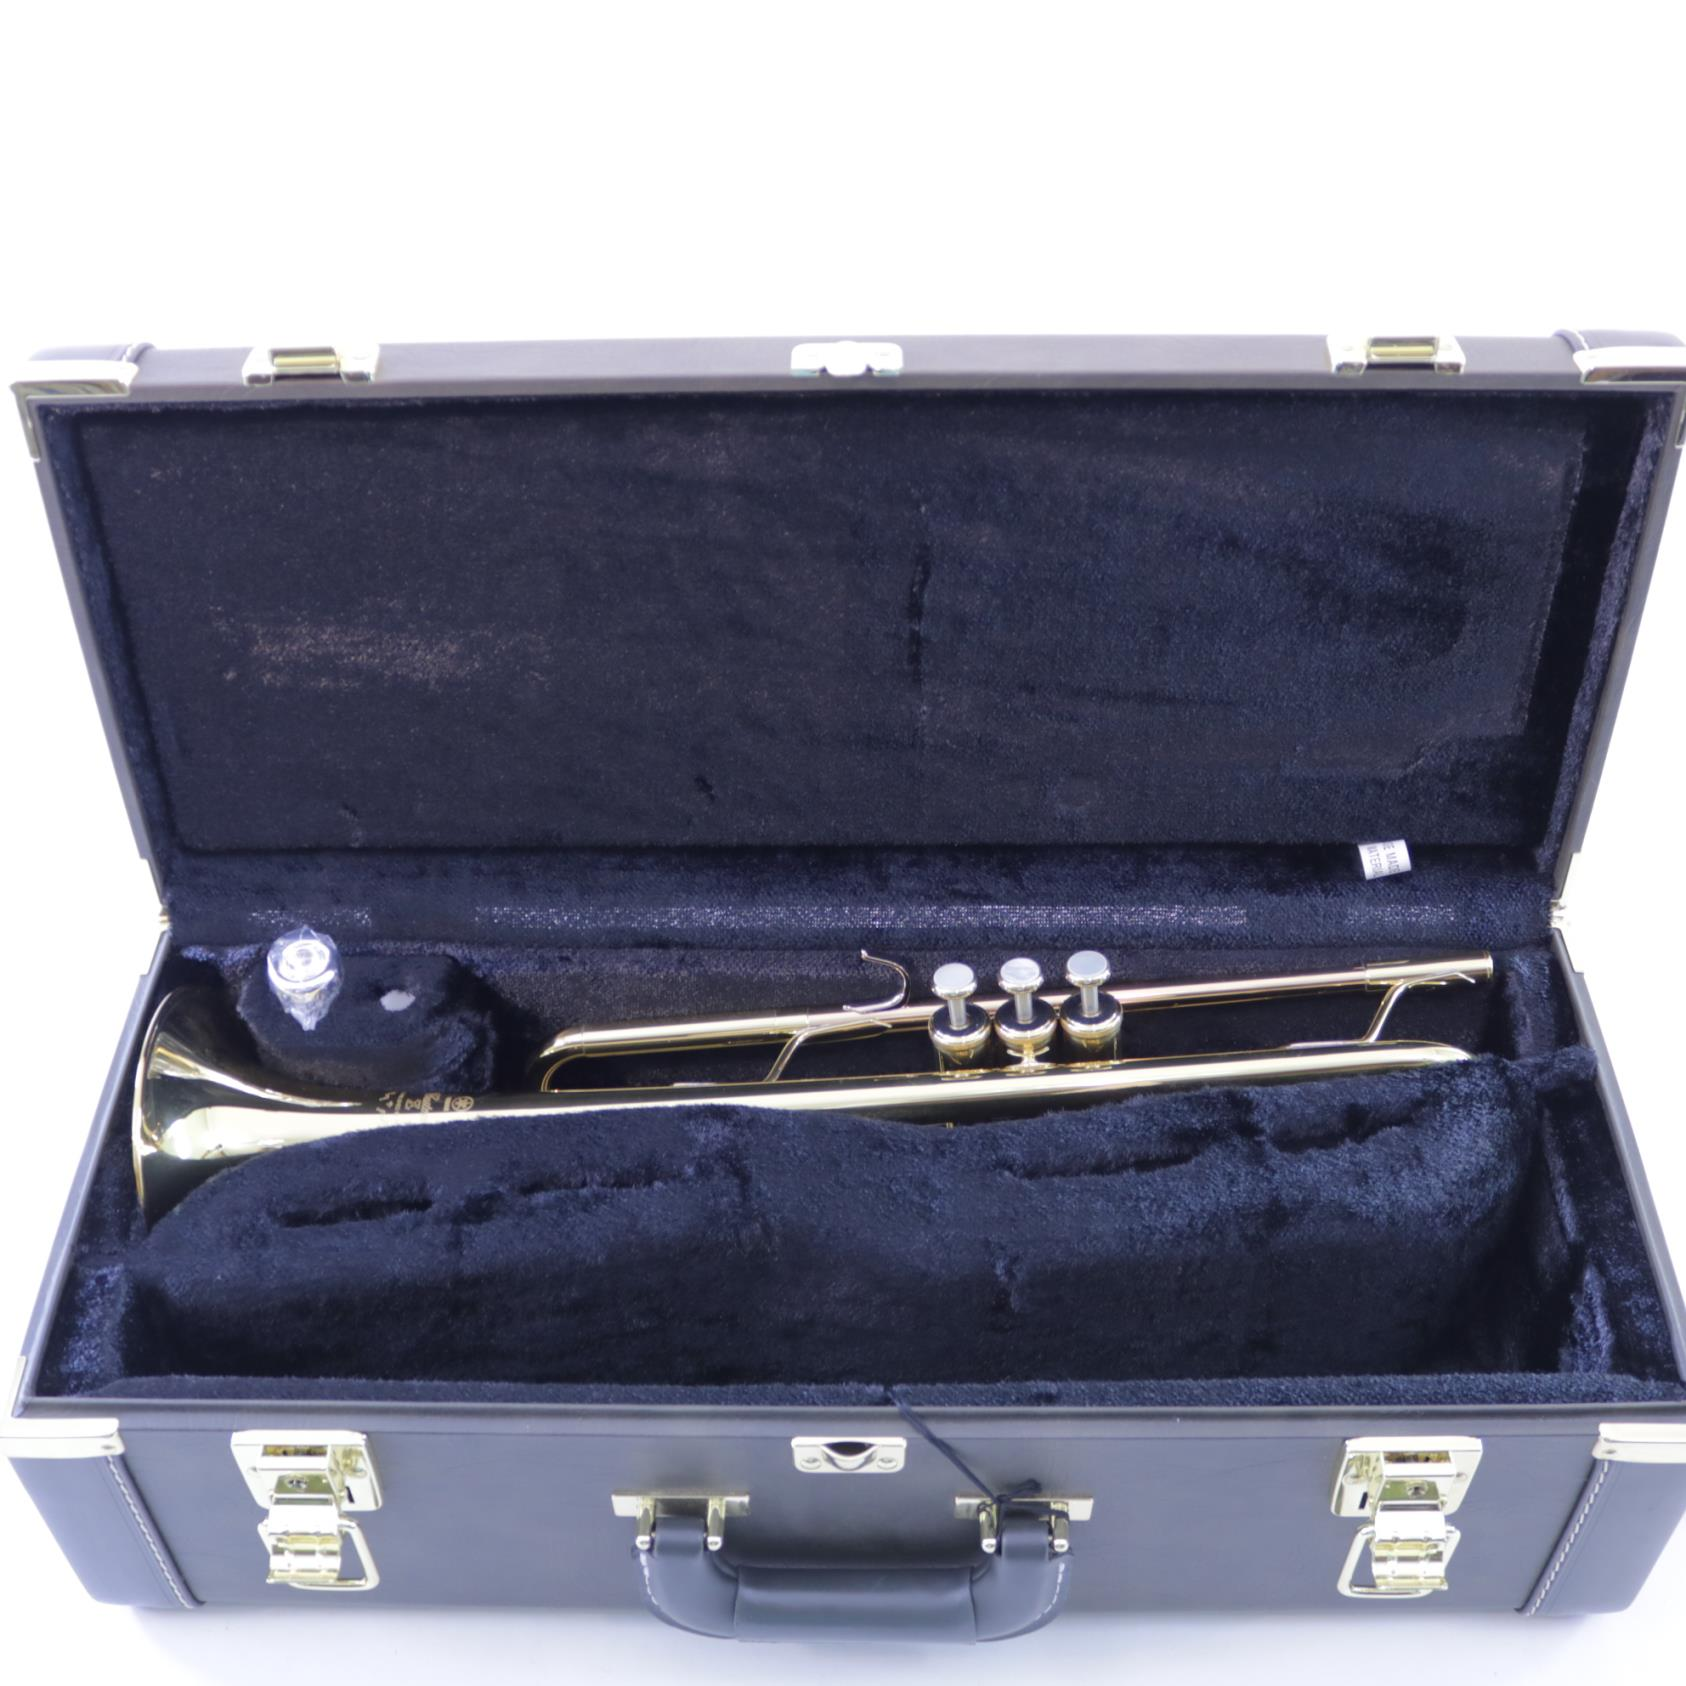 Details about Yamaha Model YTR-8310Z 'Bobby Shew' Professional Bb Trumpet  SUPERB CONDITION